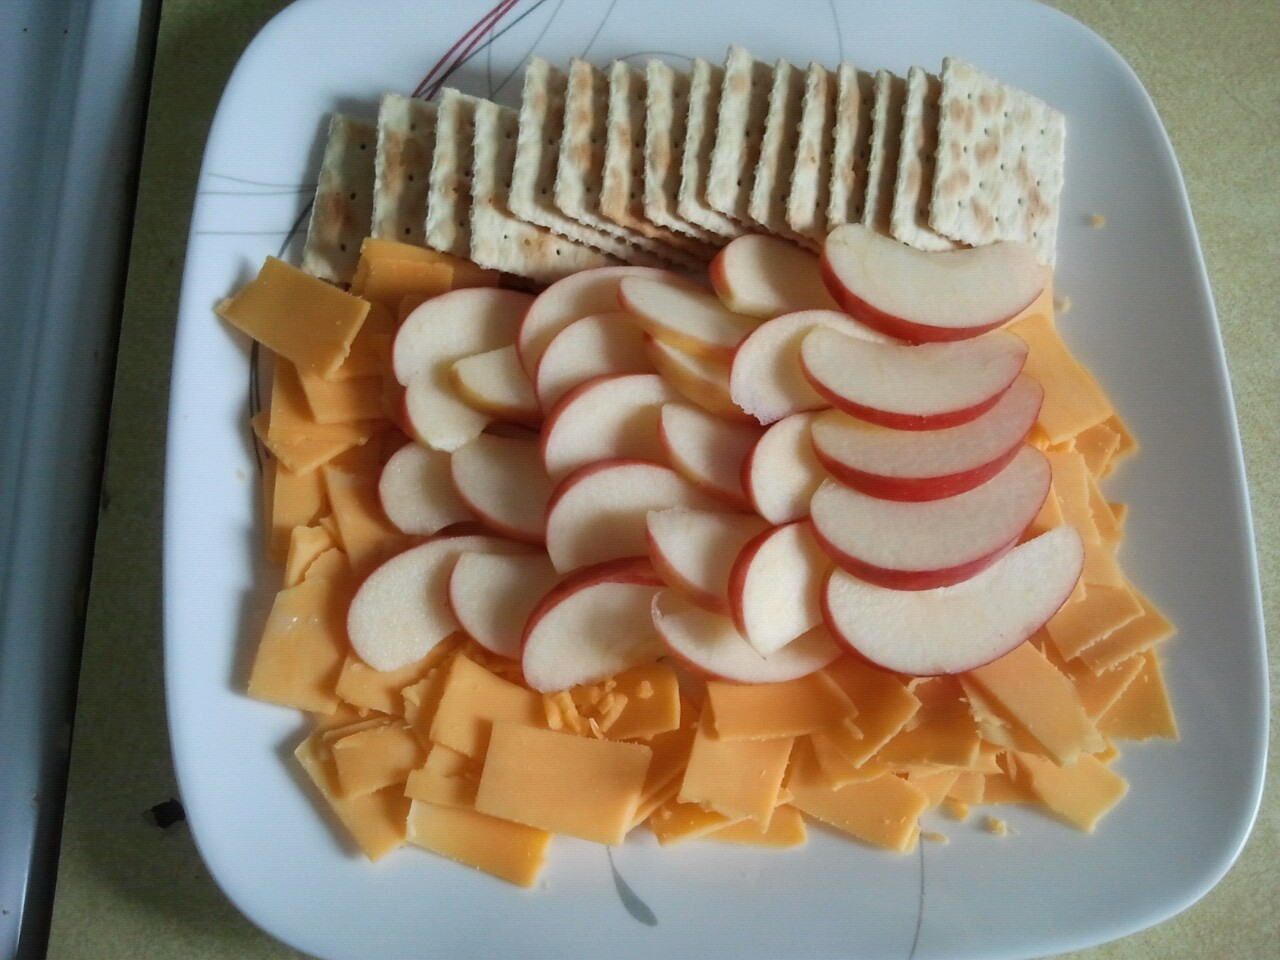 If you slice the apples and cheese thinly enough you can make a decent sized snack for yourself and two children. Each bite carries all the flavor but saves a little money and calories. Throwing in some saltines for between bites will fill you up a little. This is a great way to tide yourself over for another hour or two, until it is time for dinner.